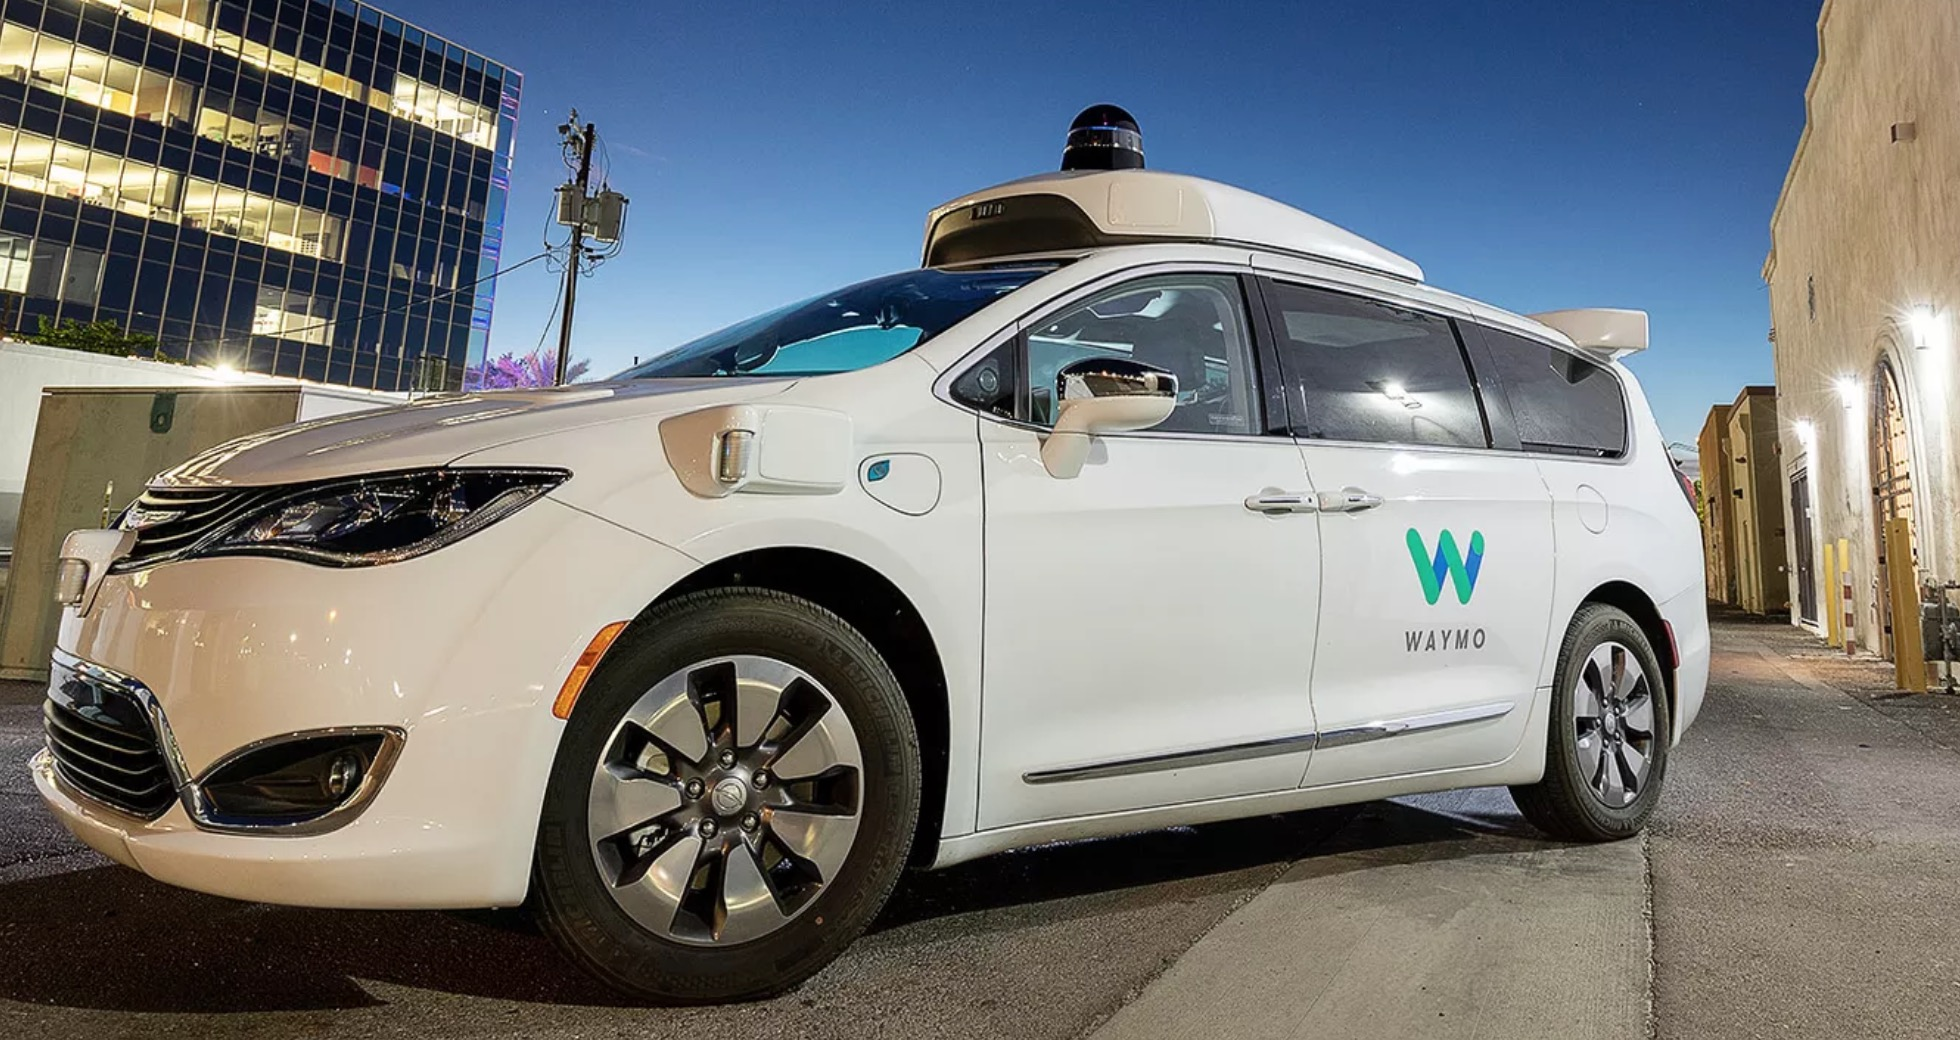 What It's Like Riding In One Of Waymo's Fully Self-Driving Taxis